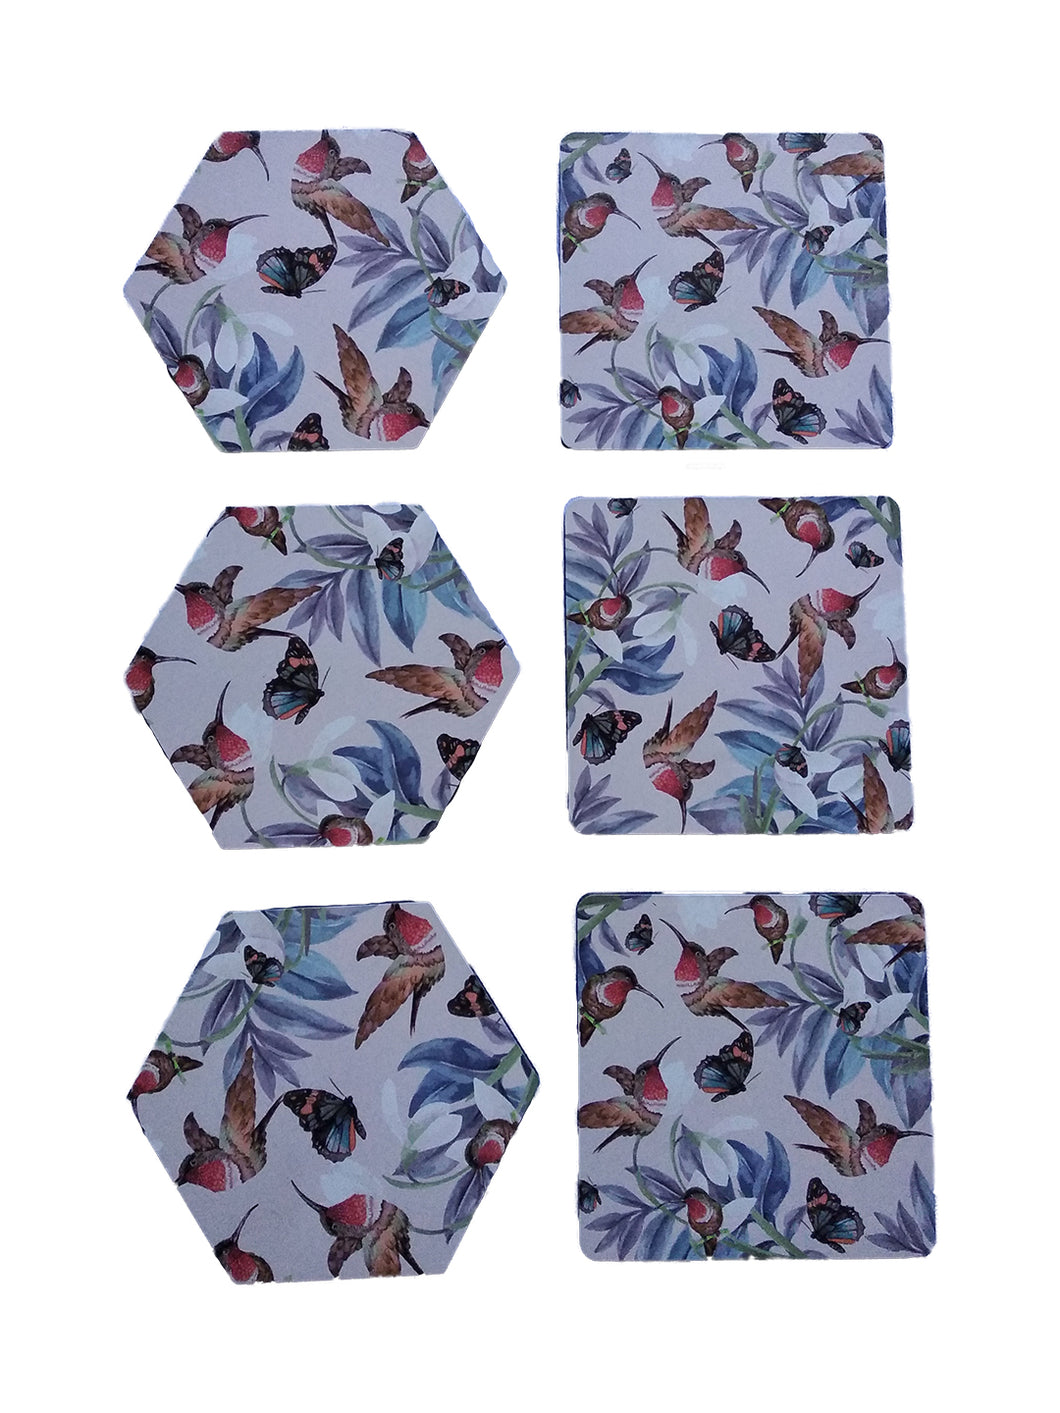 Crayton Bird Floral MDF Coaster with (Hexagon + Square Set)